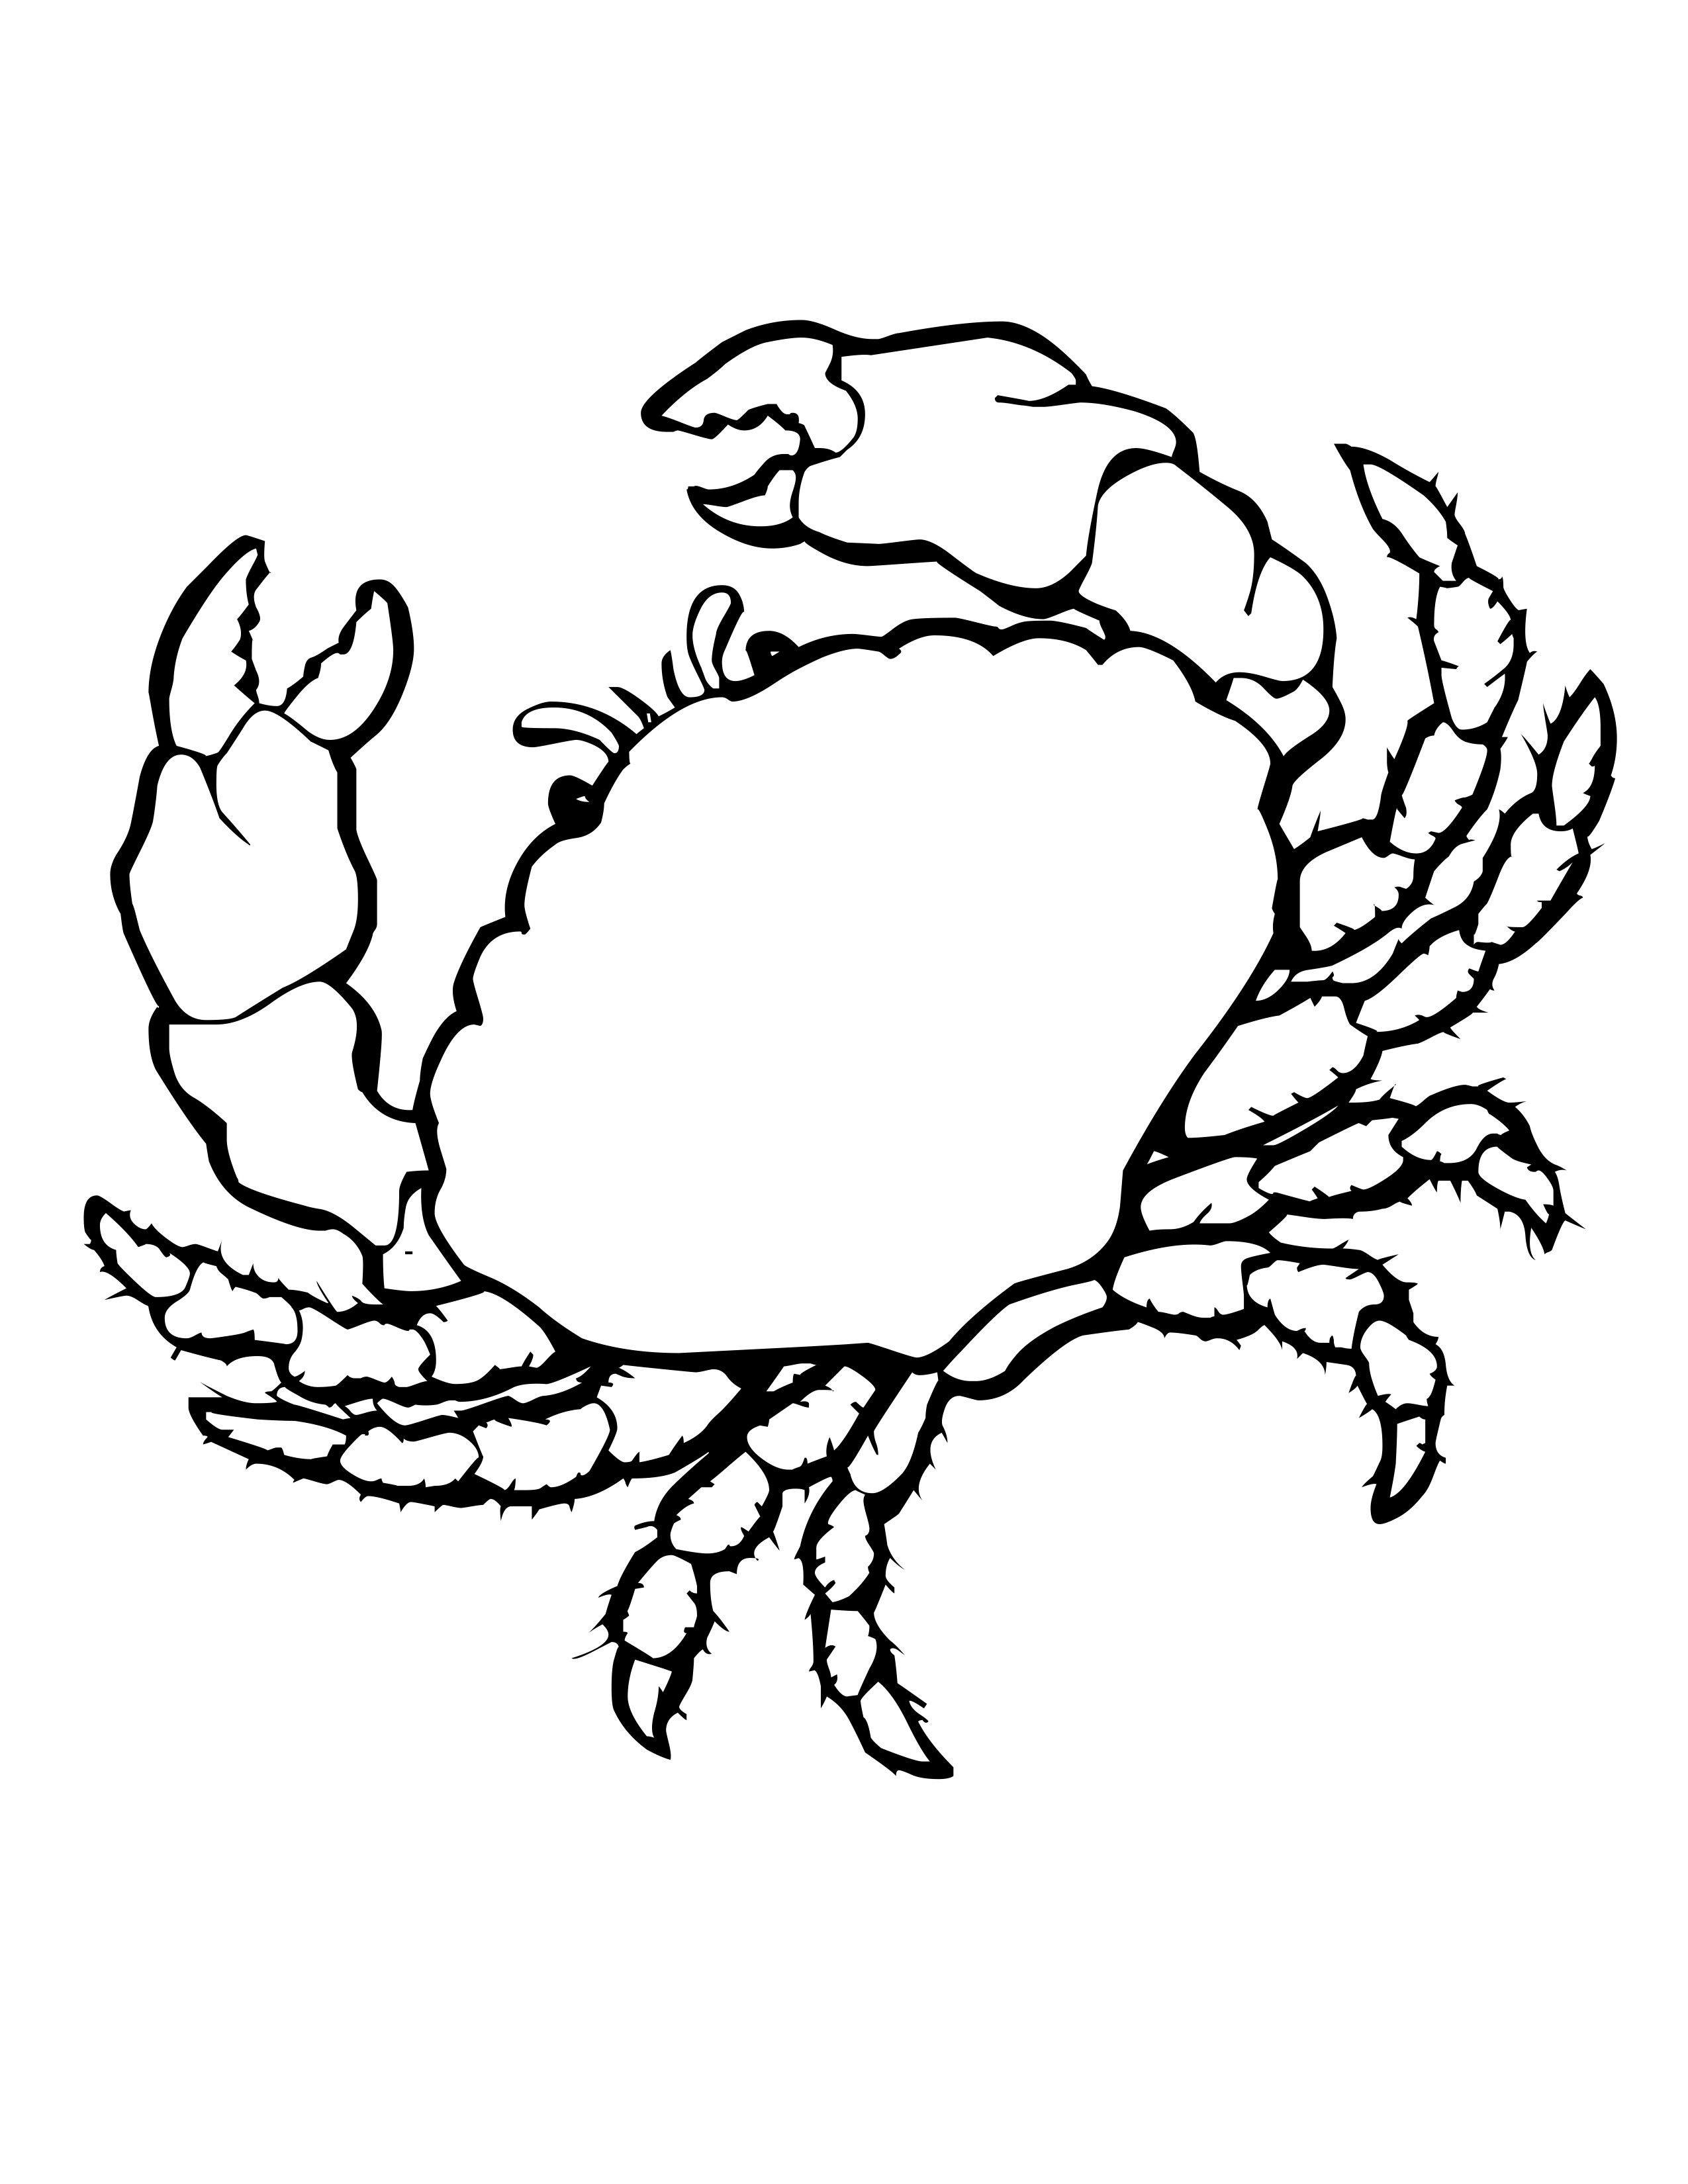 http://www.marine-animals.net/coloring-pages/crab-coloring-page.jpg ...